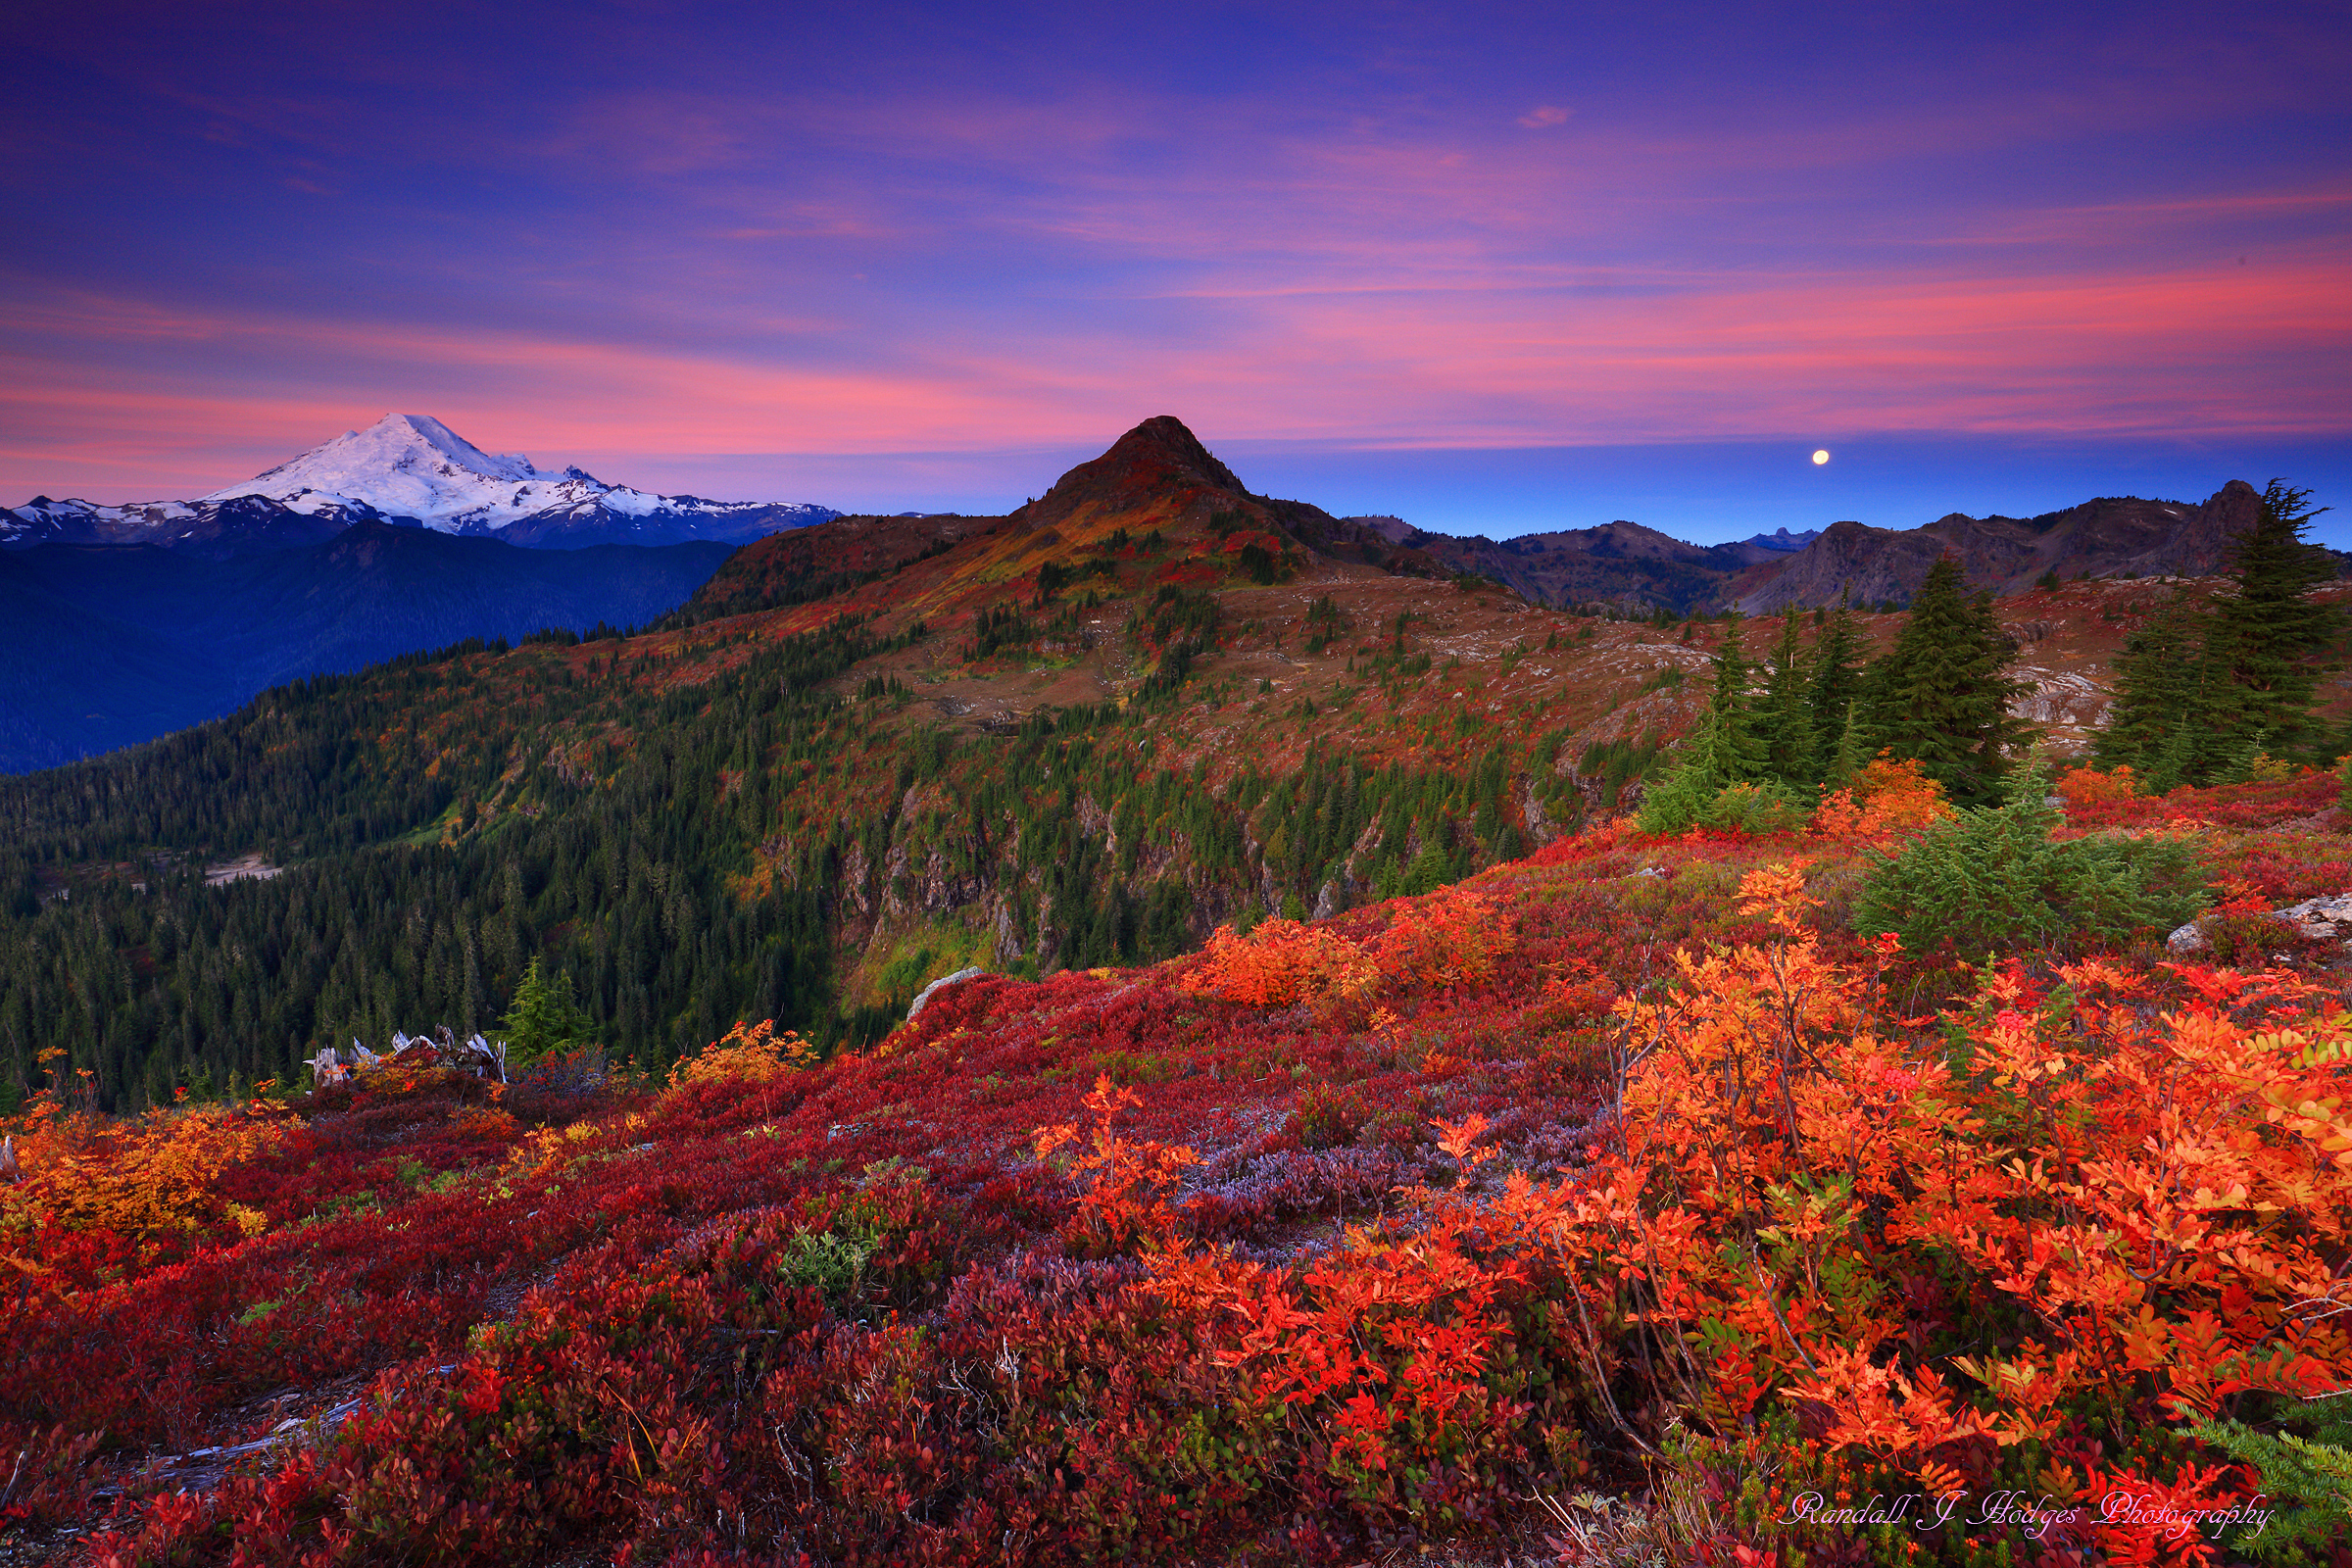 Sunrise Alpenglow Over Fall Color and Mt Baker in the Mt Baker Wilderness in the north Cascades of Washington